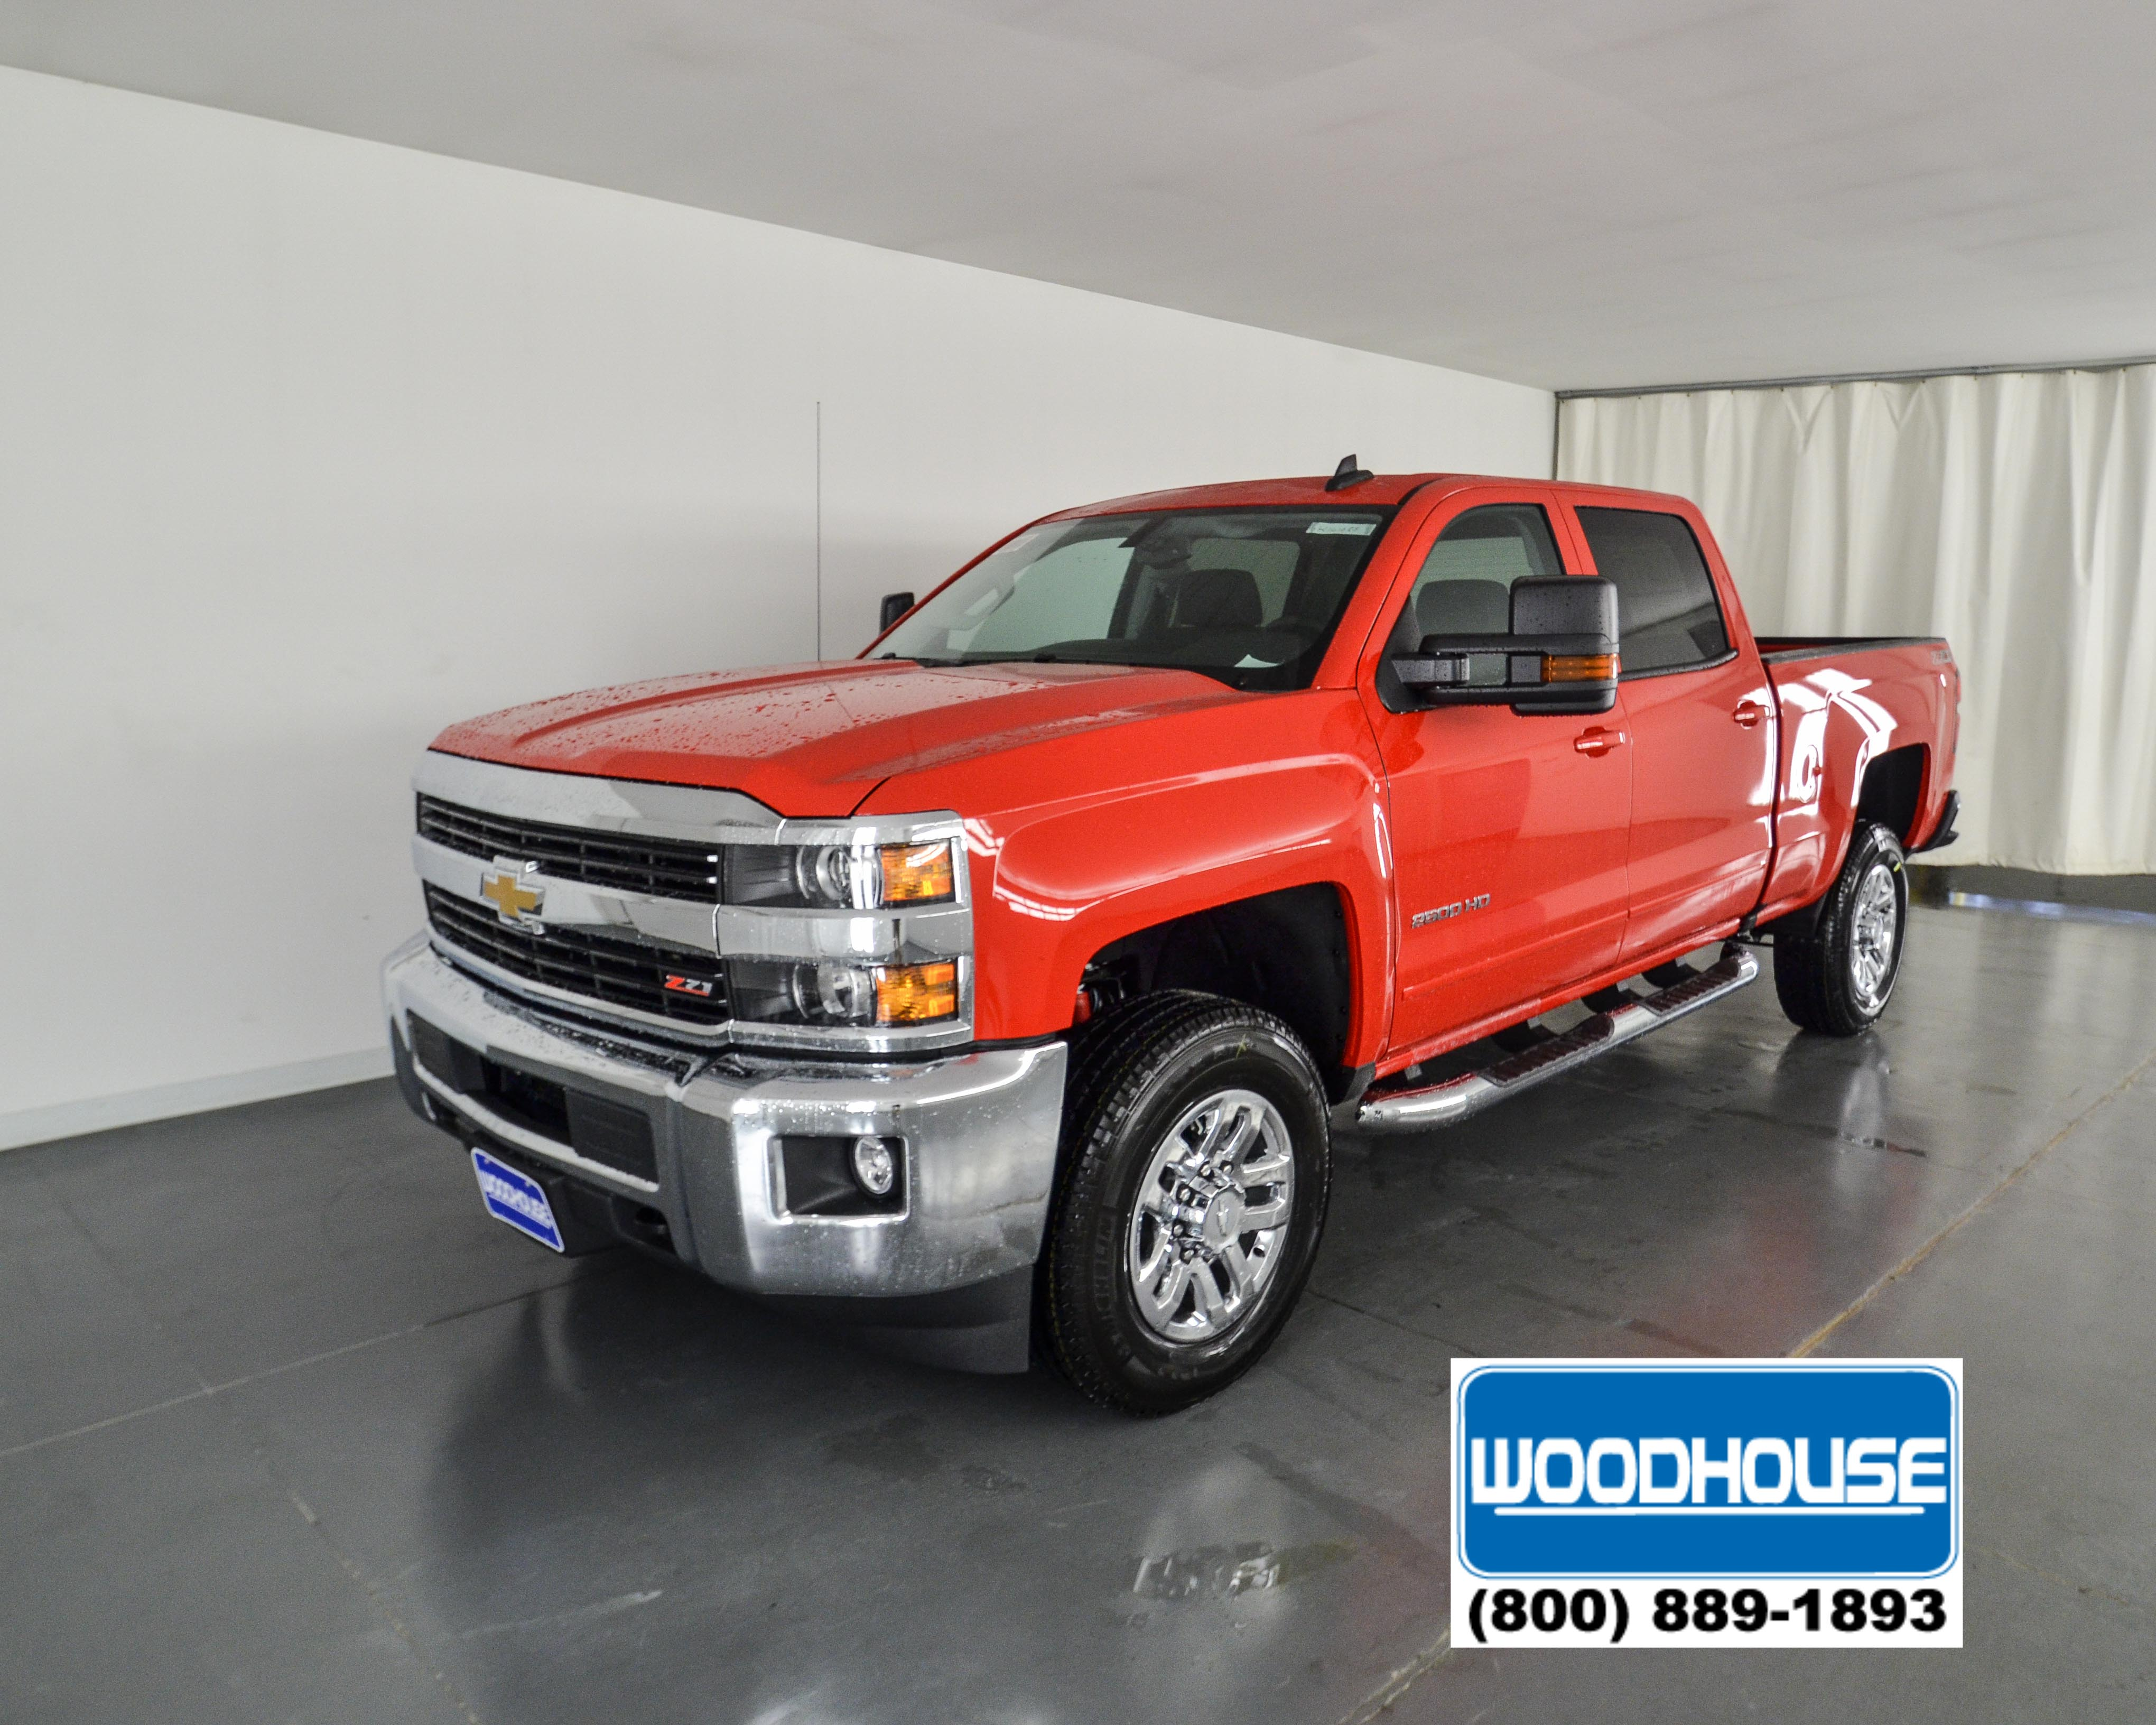 Blair Woodhouse Chevrolet Buick In Missouri Valley Autos